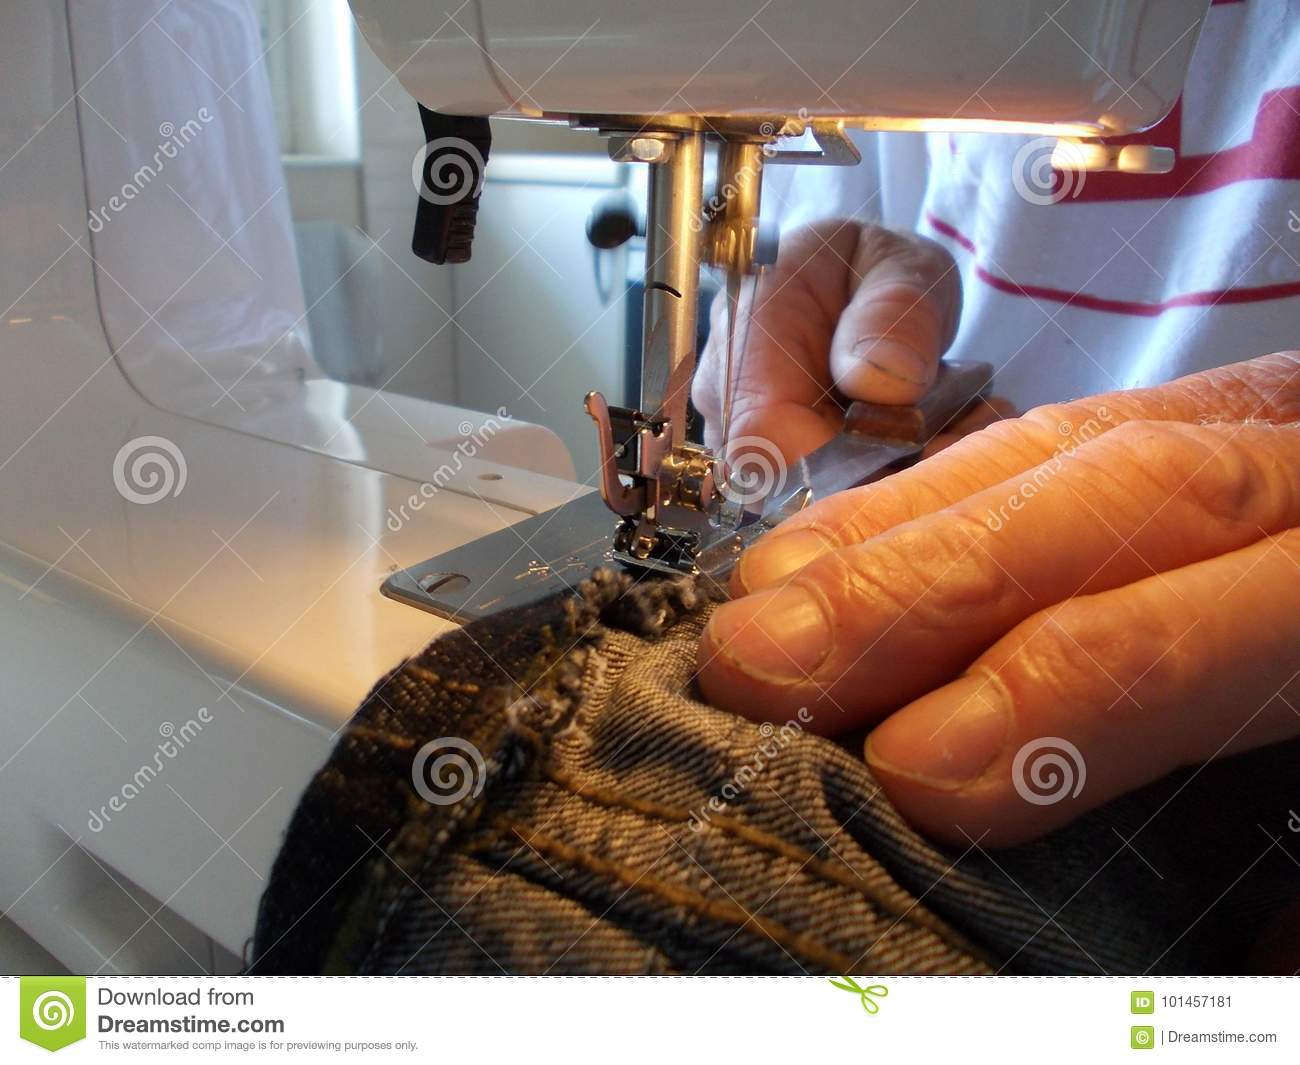 man working with an electrical sewing machine in a home business